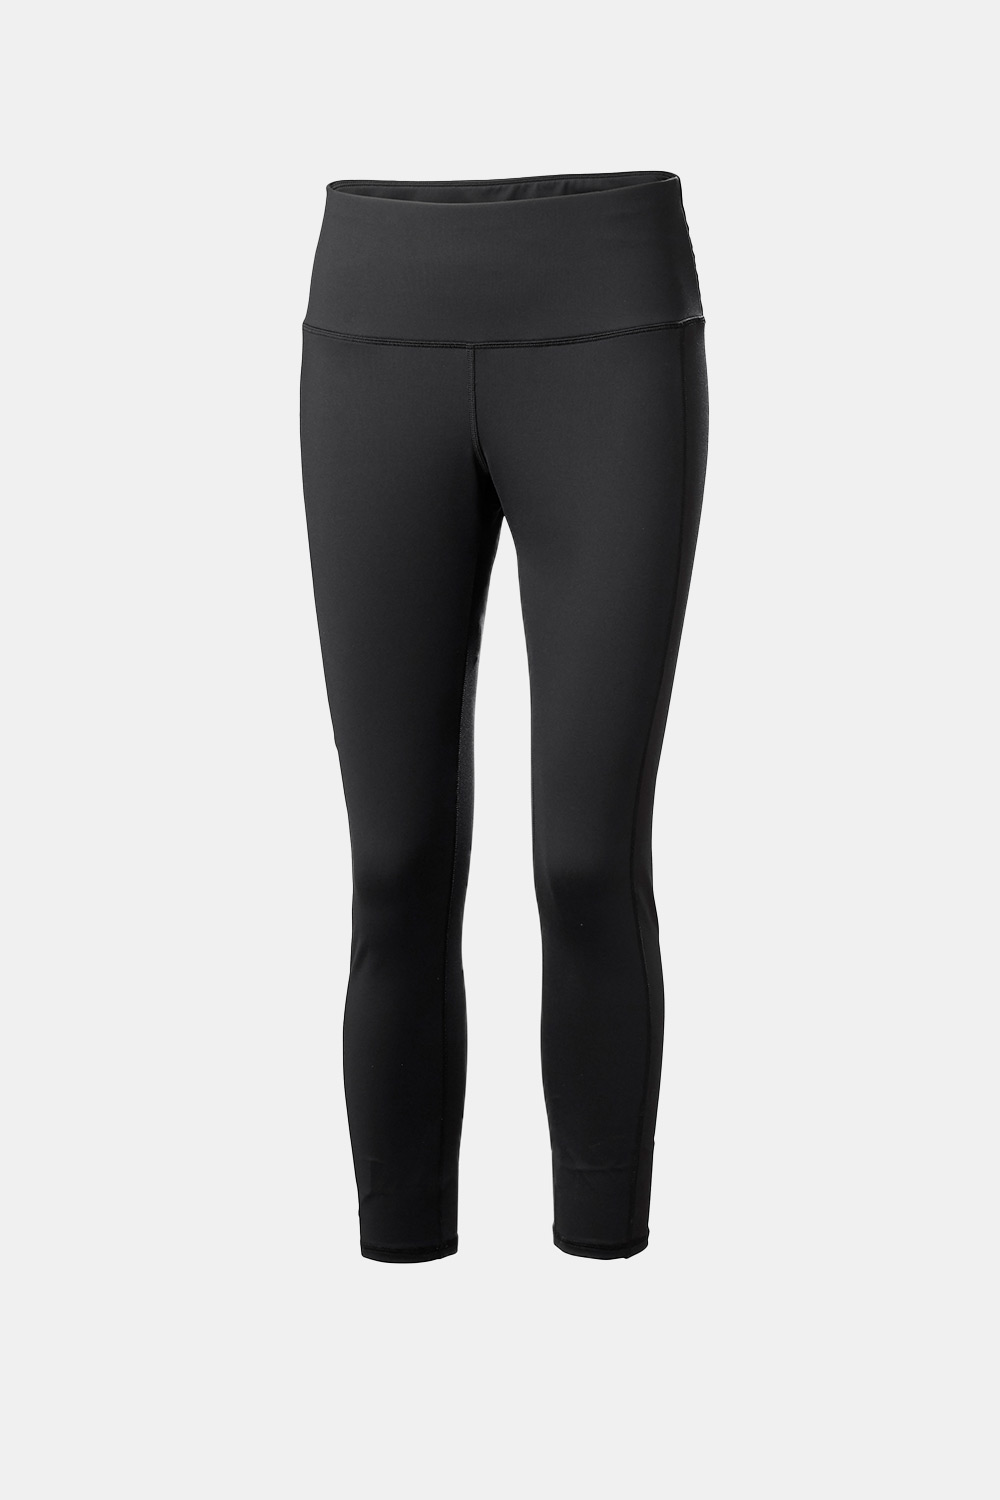 Helly Hansen Verglas sport leggings